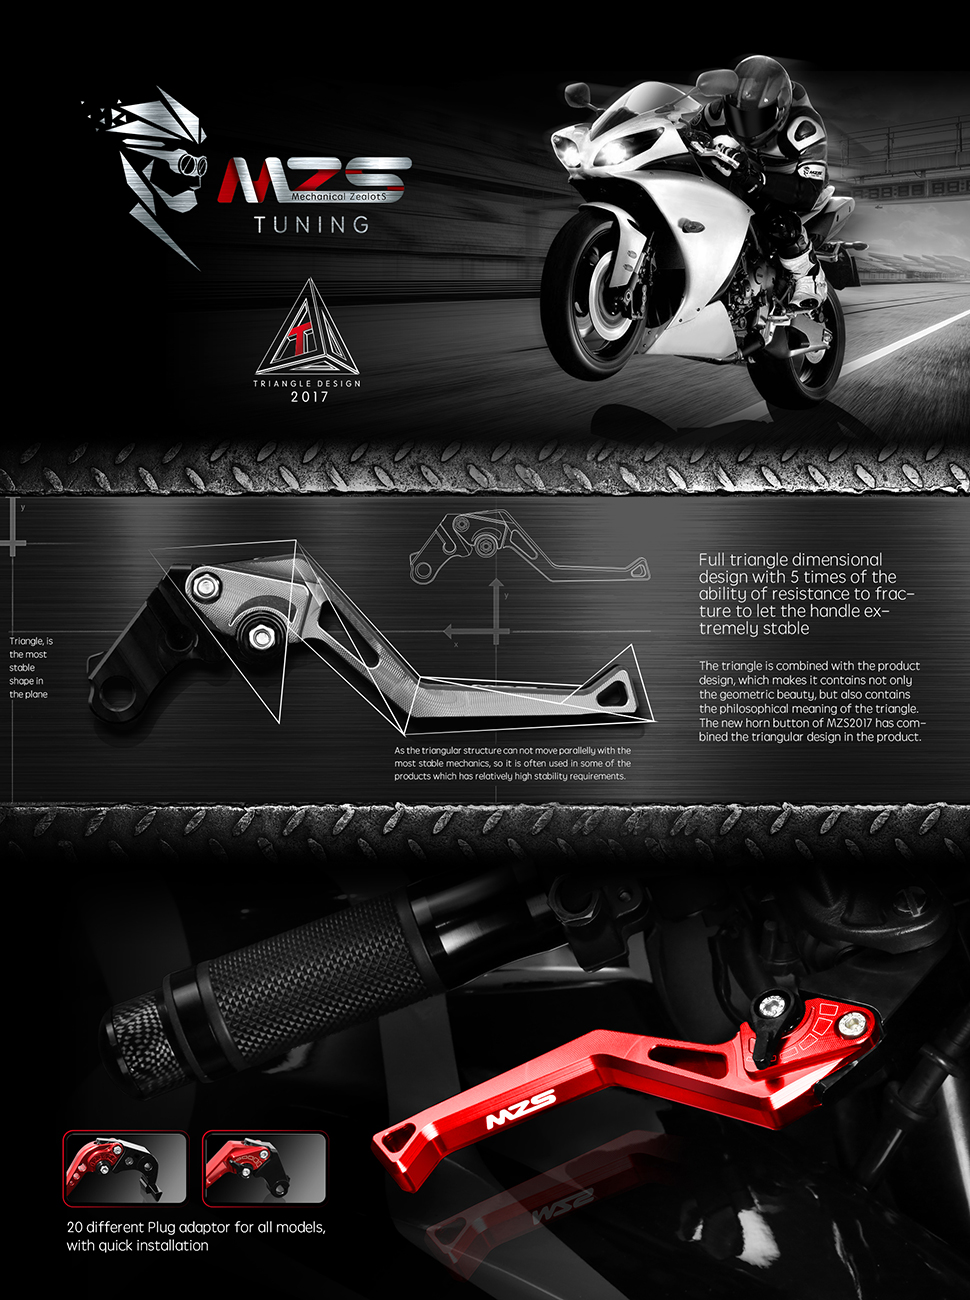 MZS Adjustment Brake Clutch Levers for Kawasaki Versys 650cc 2006-2008,GPZ500S/EX500R Ninja 1990-2009,Ninja 650R (ER-6f ER-6n) 2006-2008,ER-5 ...